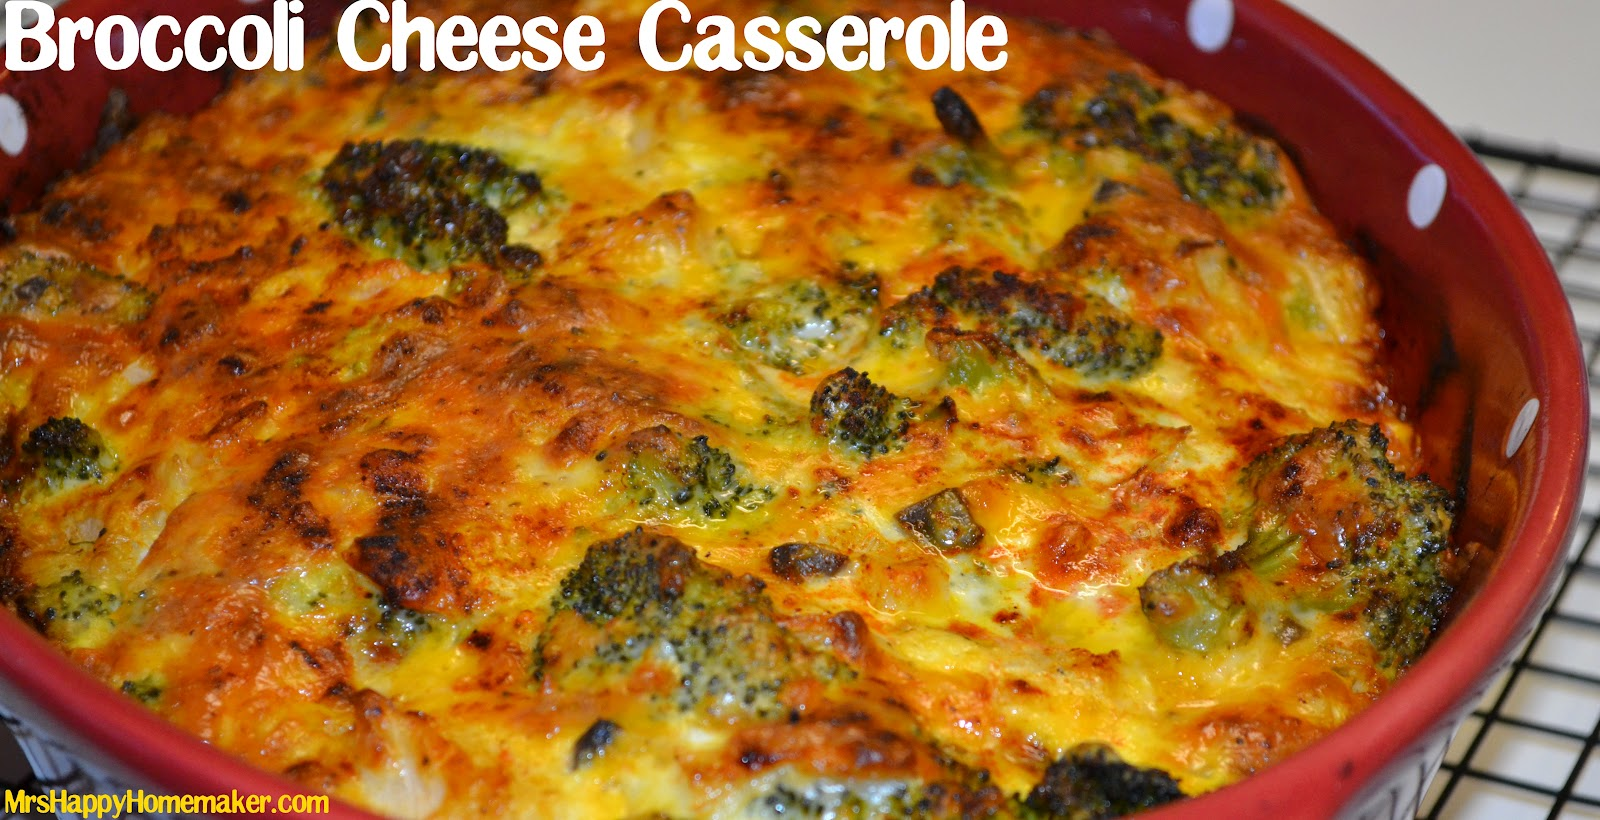 This Broccoli Cheese Casserole is my #1 favorite side dish! It's SO ...